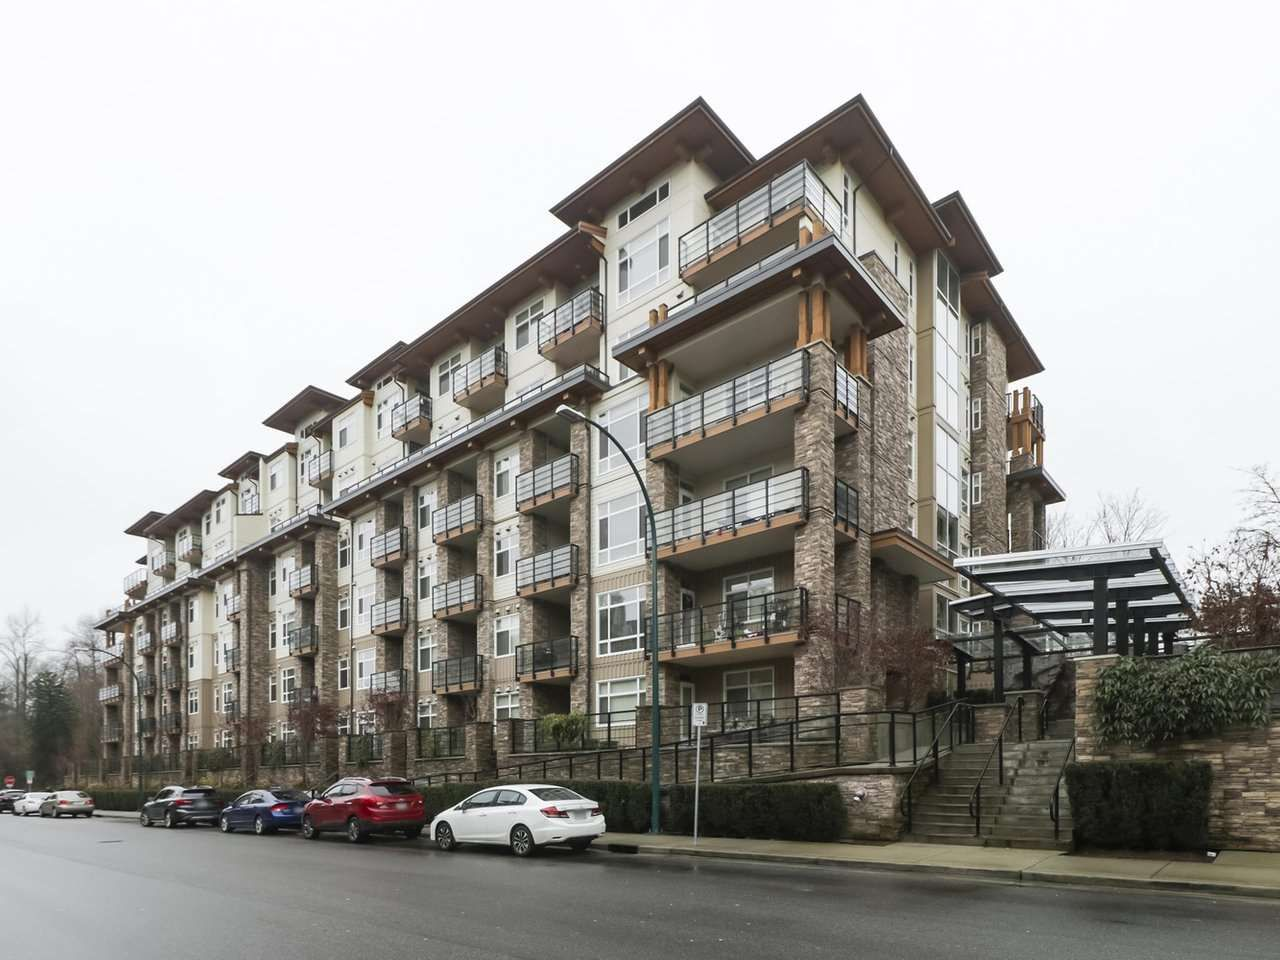 """Main Photo: 314 2495 WILSON Avenue in Port Coquitlam: Central Pt Coquitlam Condo for sale in """"ORCHID RIVERSIDE"""" : MLS®# R2425971"""